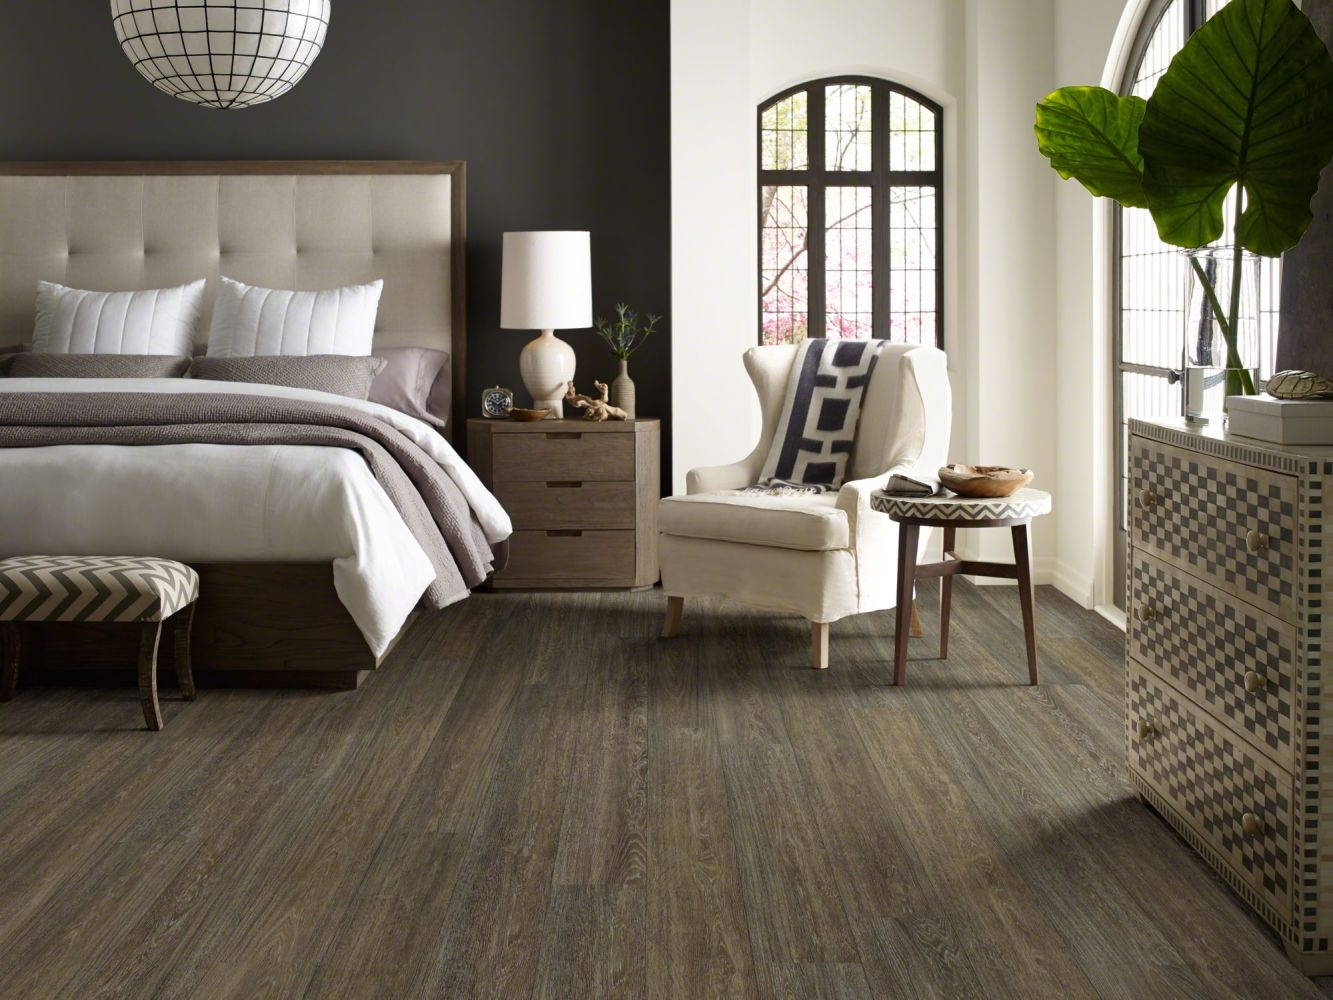 Shaw Floors Vinyl Residential Alto Plus Plank Miletto 00771_2576V